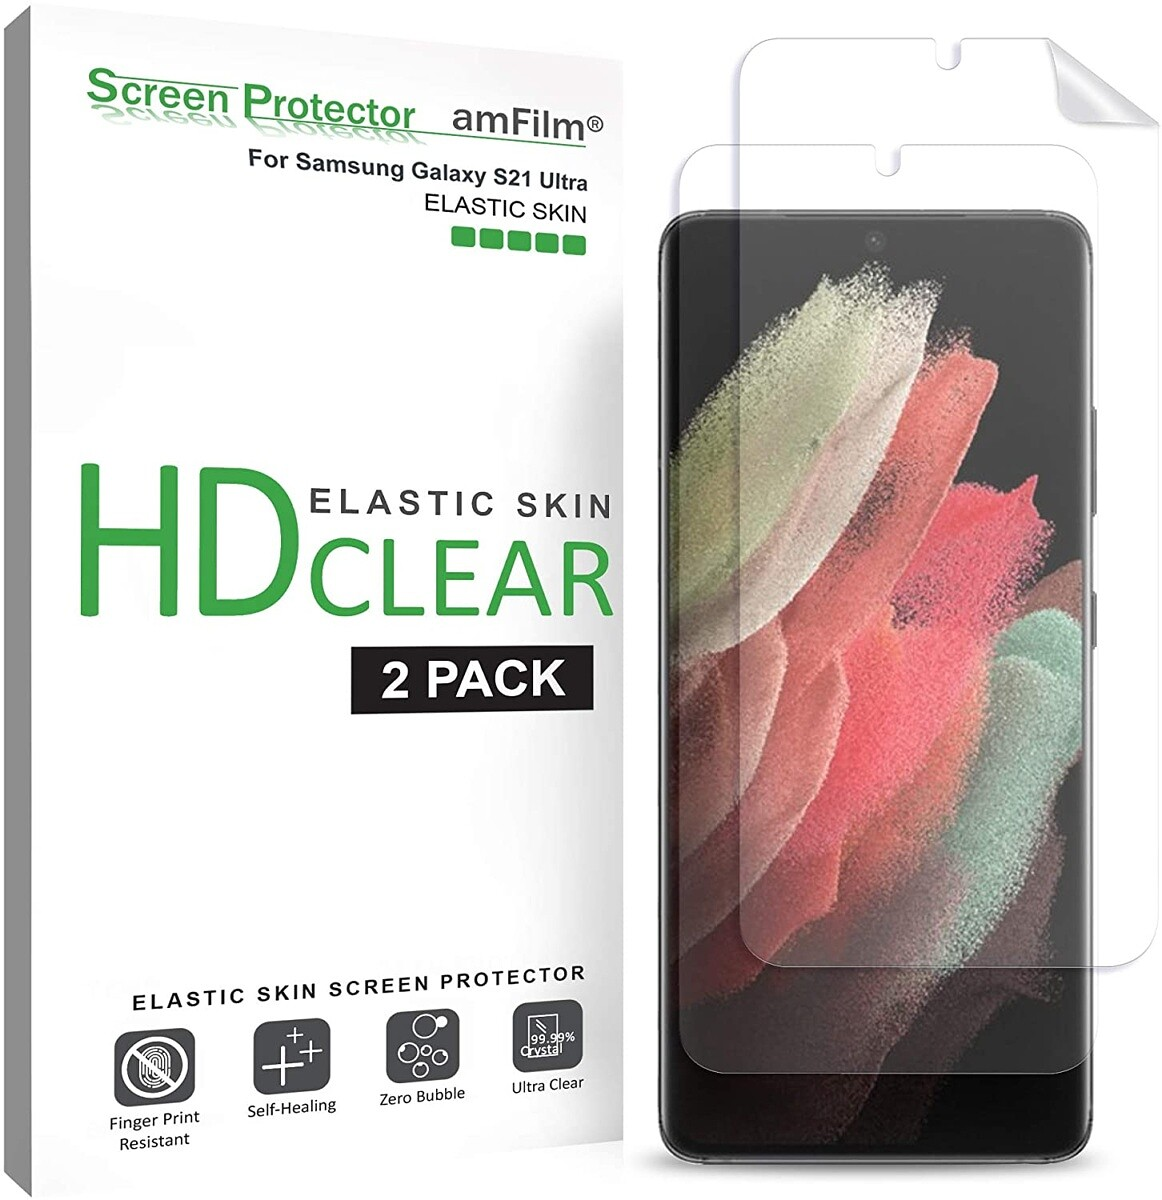 amFilm Plastic Screen Protector S21 Ultra